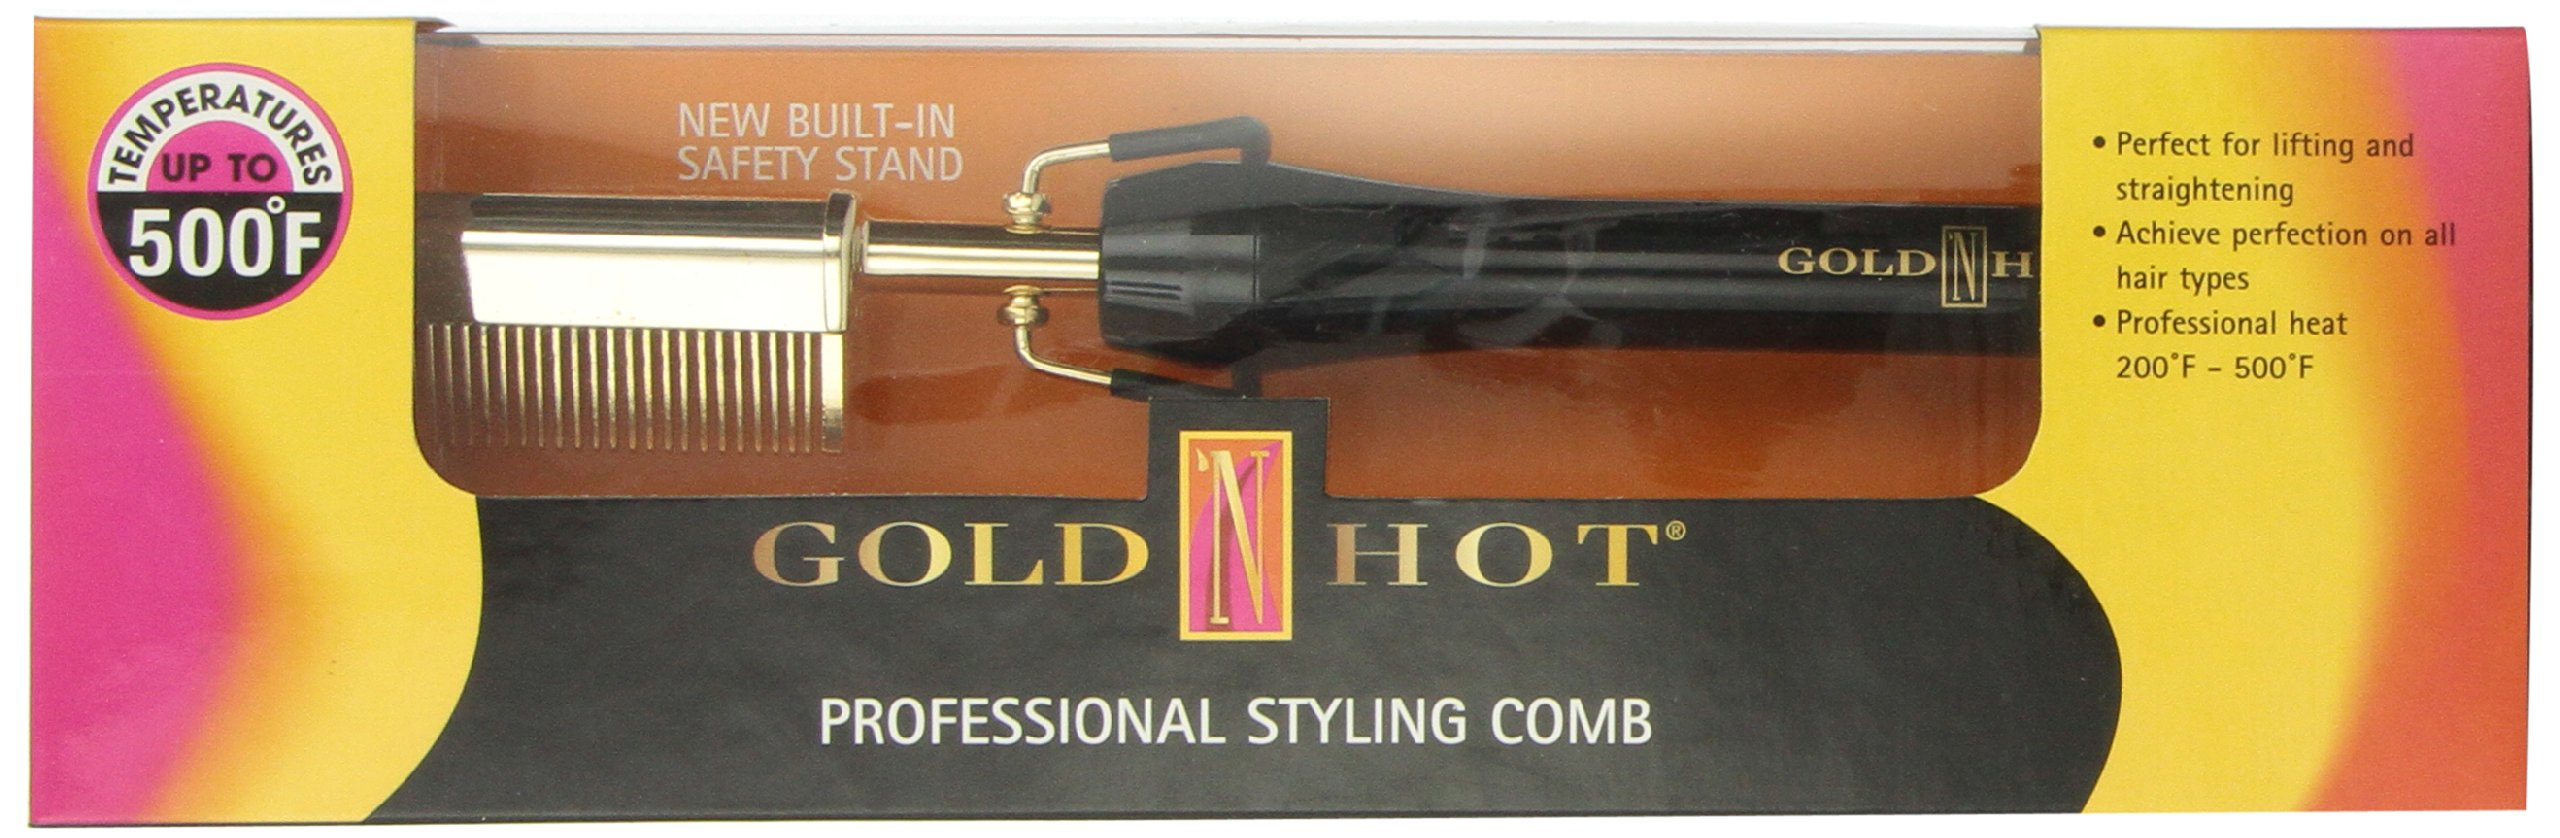 Gold N Hot Professional Styling Comb with Mtr (Multi-Temp Regulator)